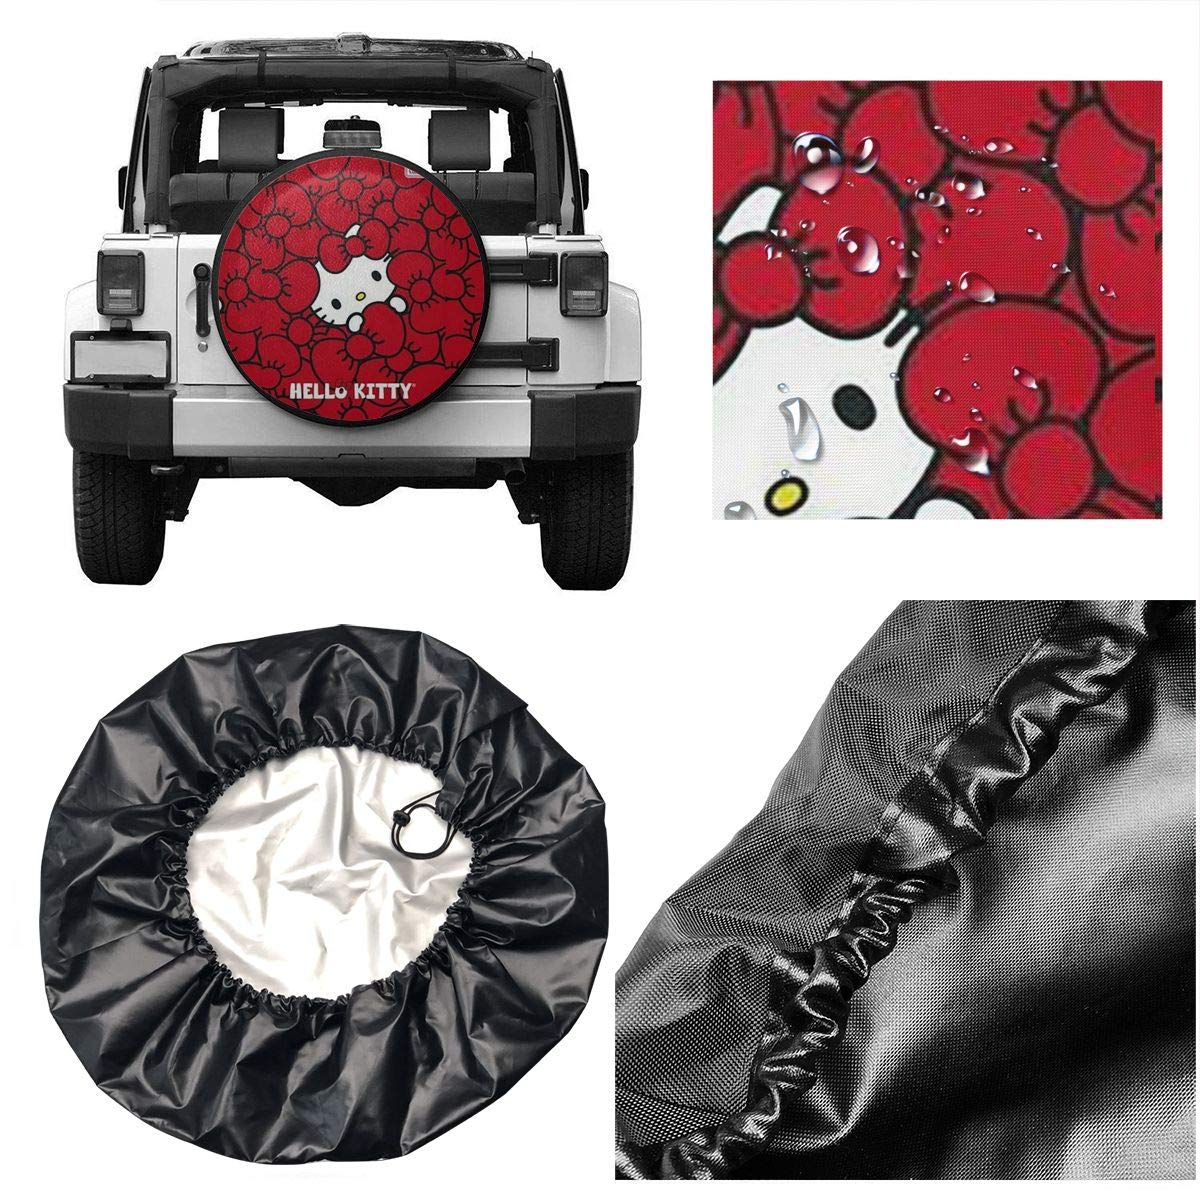 Lbbb1994 Fashion Hello Kitty in Red Background For14-17 Inch Classic Accessories Over Drive Standard RV Jeep Liberty Wrangler SUV Camper Travel Wheel Cover